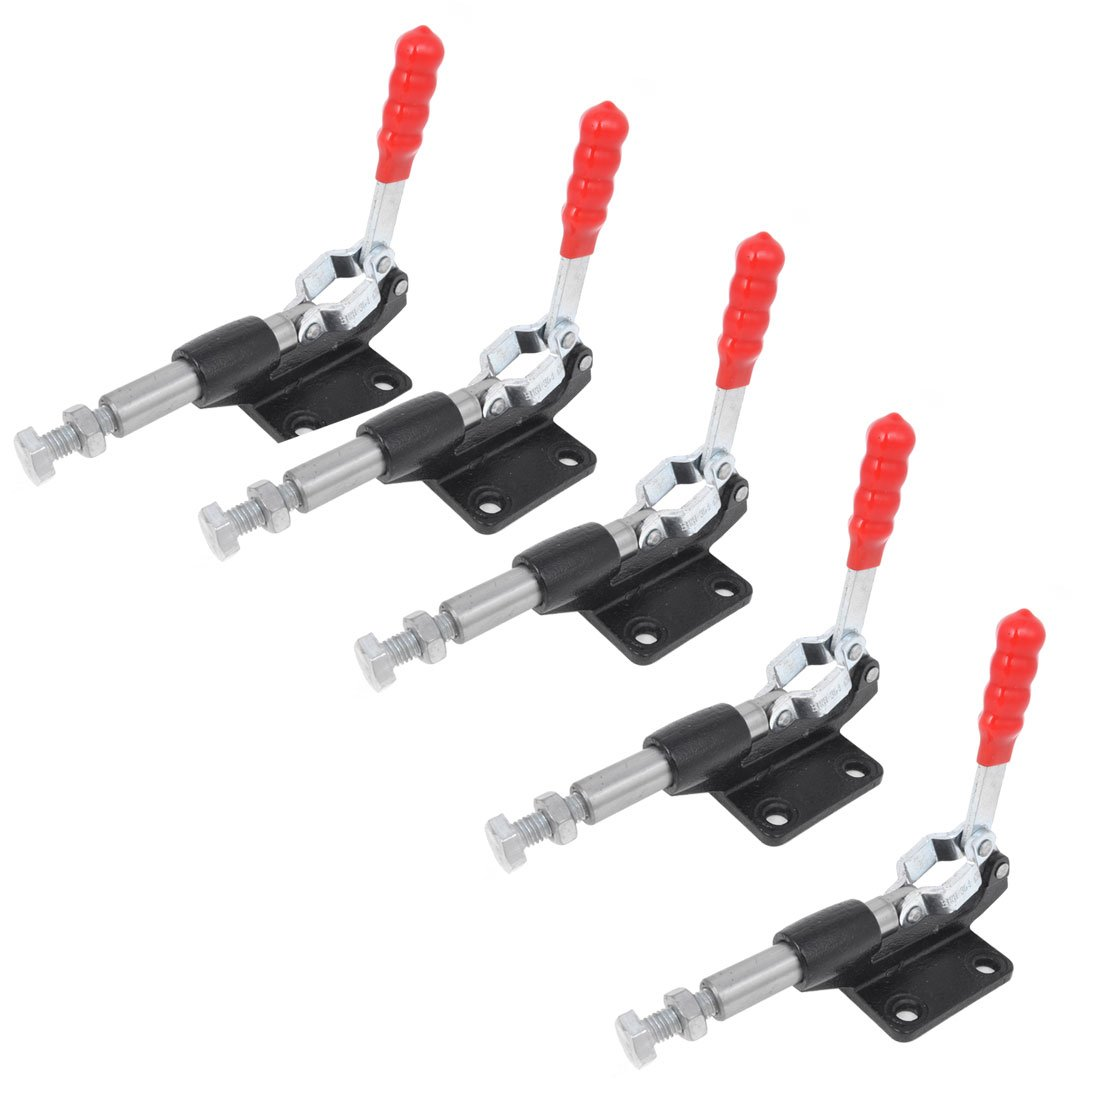 Uxcell 304C U Shaped Bar Quickly Holding Push Pull Toggle Clamp 227Kg, 5-Piece